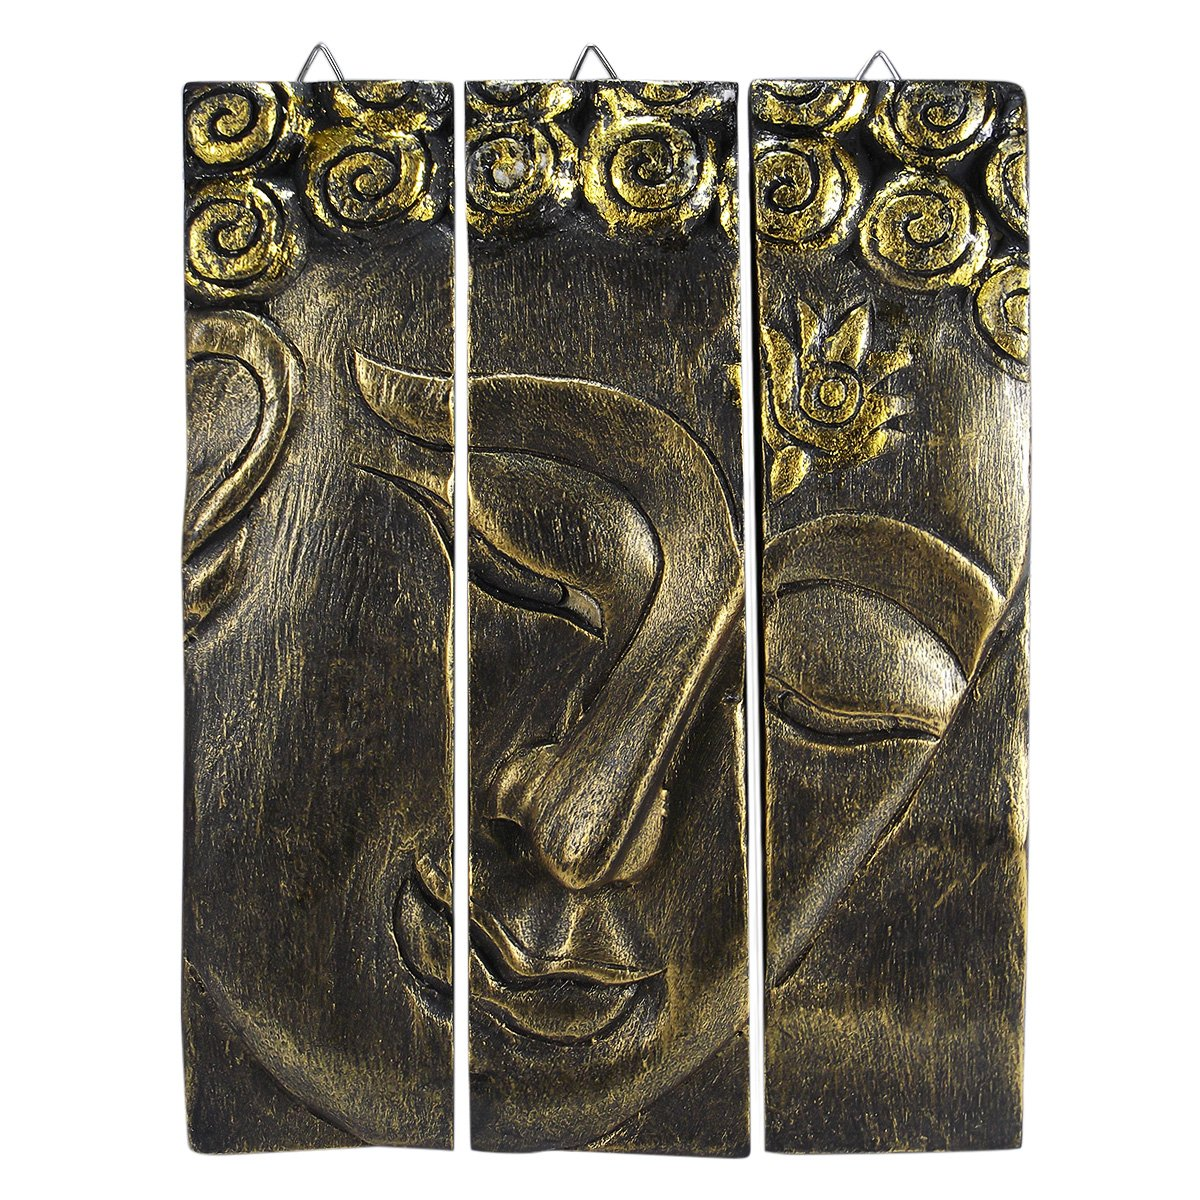 Gold-tone Buddha Face Nirvana Spirit 3-Panel Hand Carved Rain Tree Wood Wall Art Relief Panel Meditating Buddhism Peace Zen Wall Sculpture by AeraVida